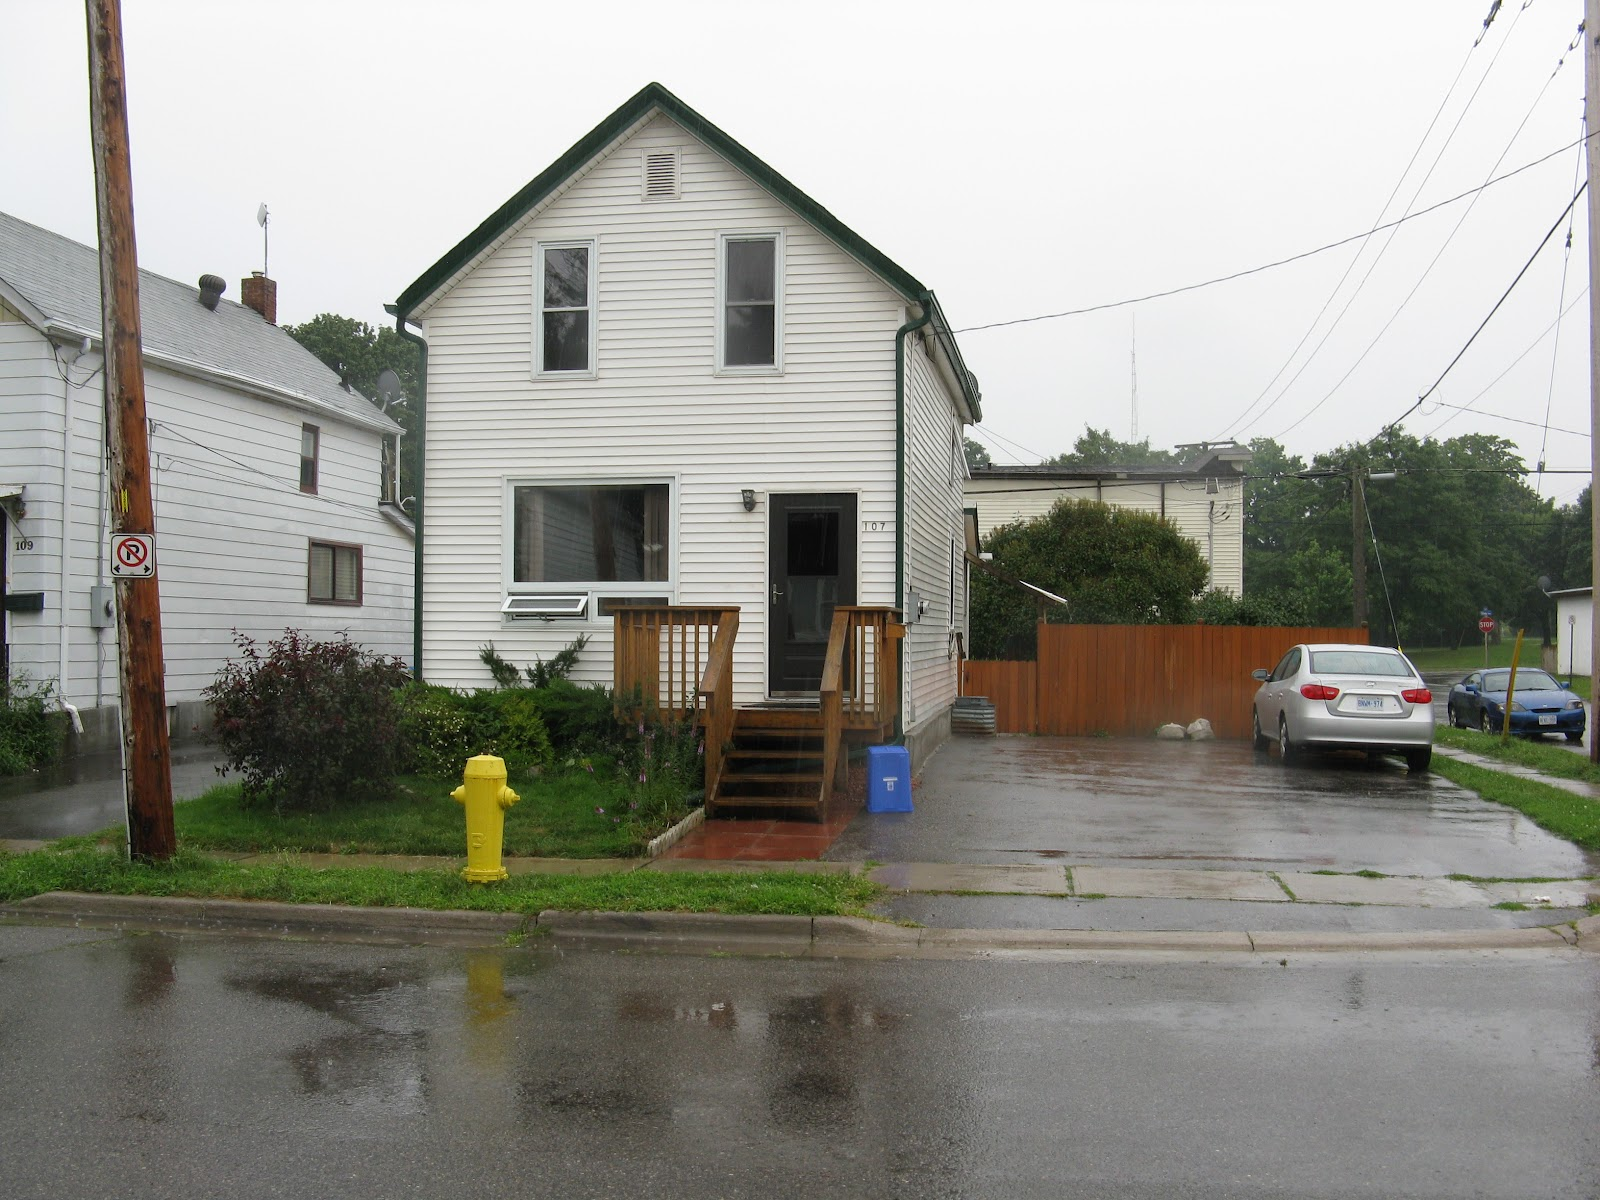 Detached 3 Bedroom Whole House For Rent In Oshawa August 2012